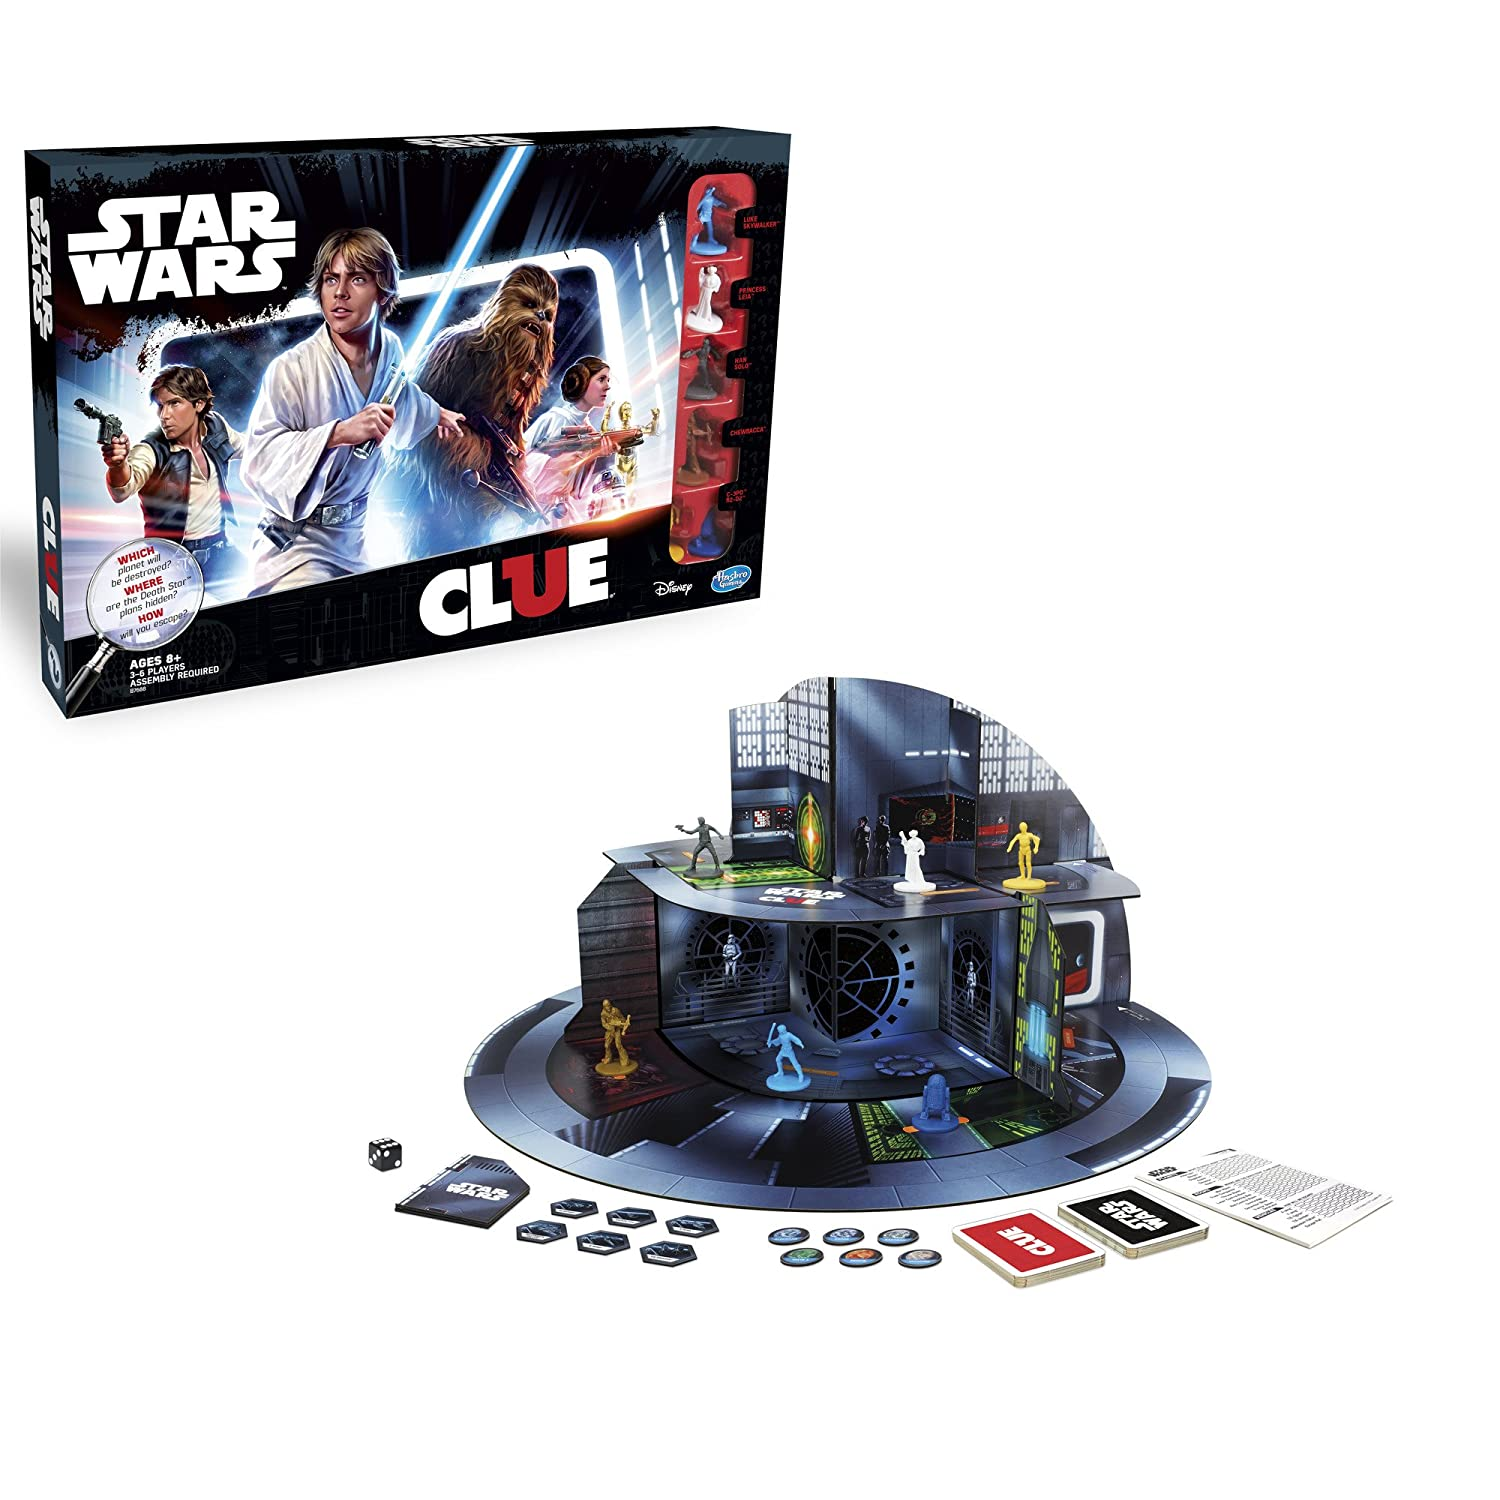 Amazon.com: Hasbro Clue Game: Star Wars Edition: Toys & Games